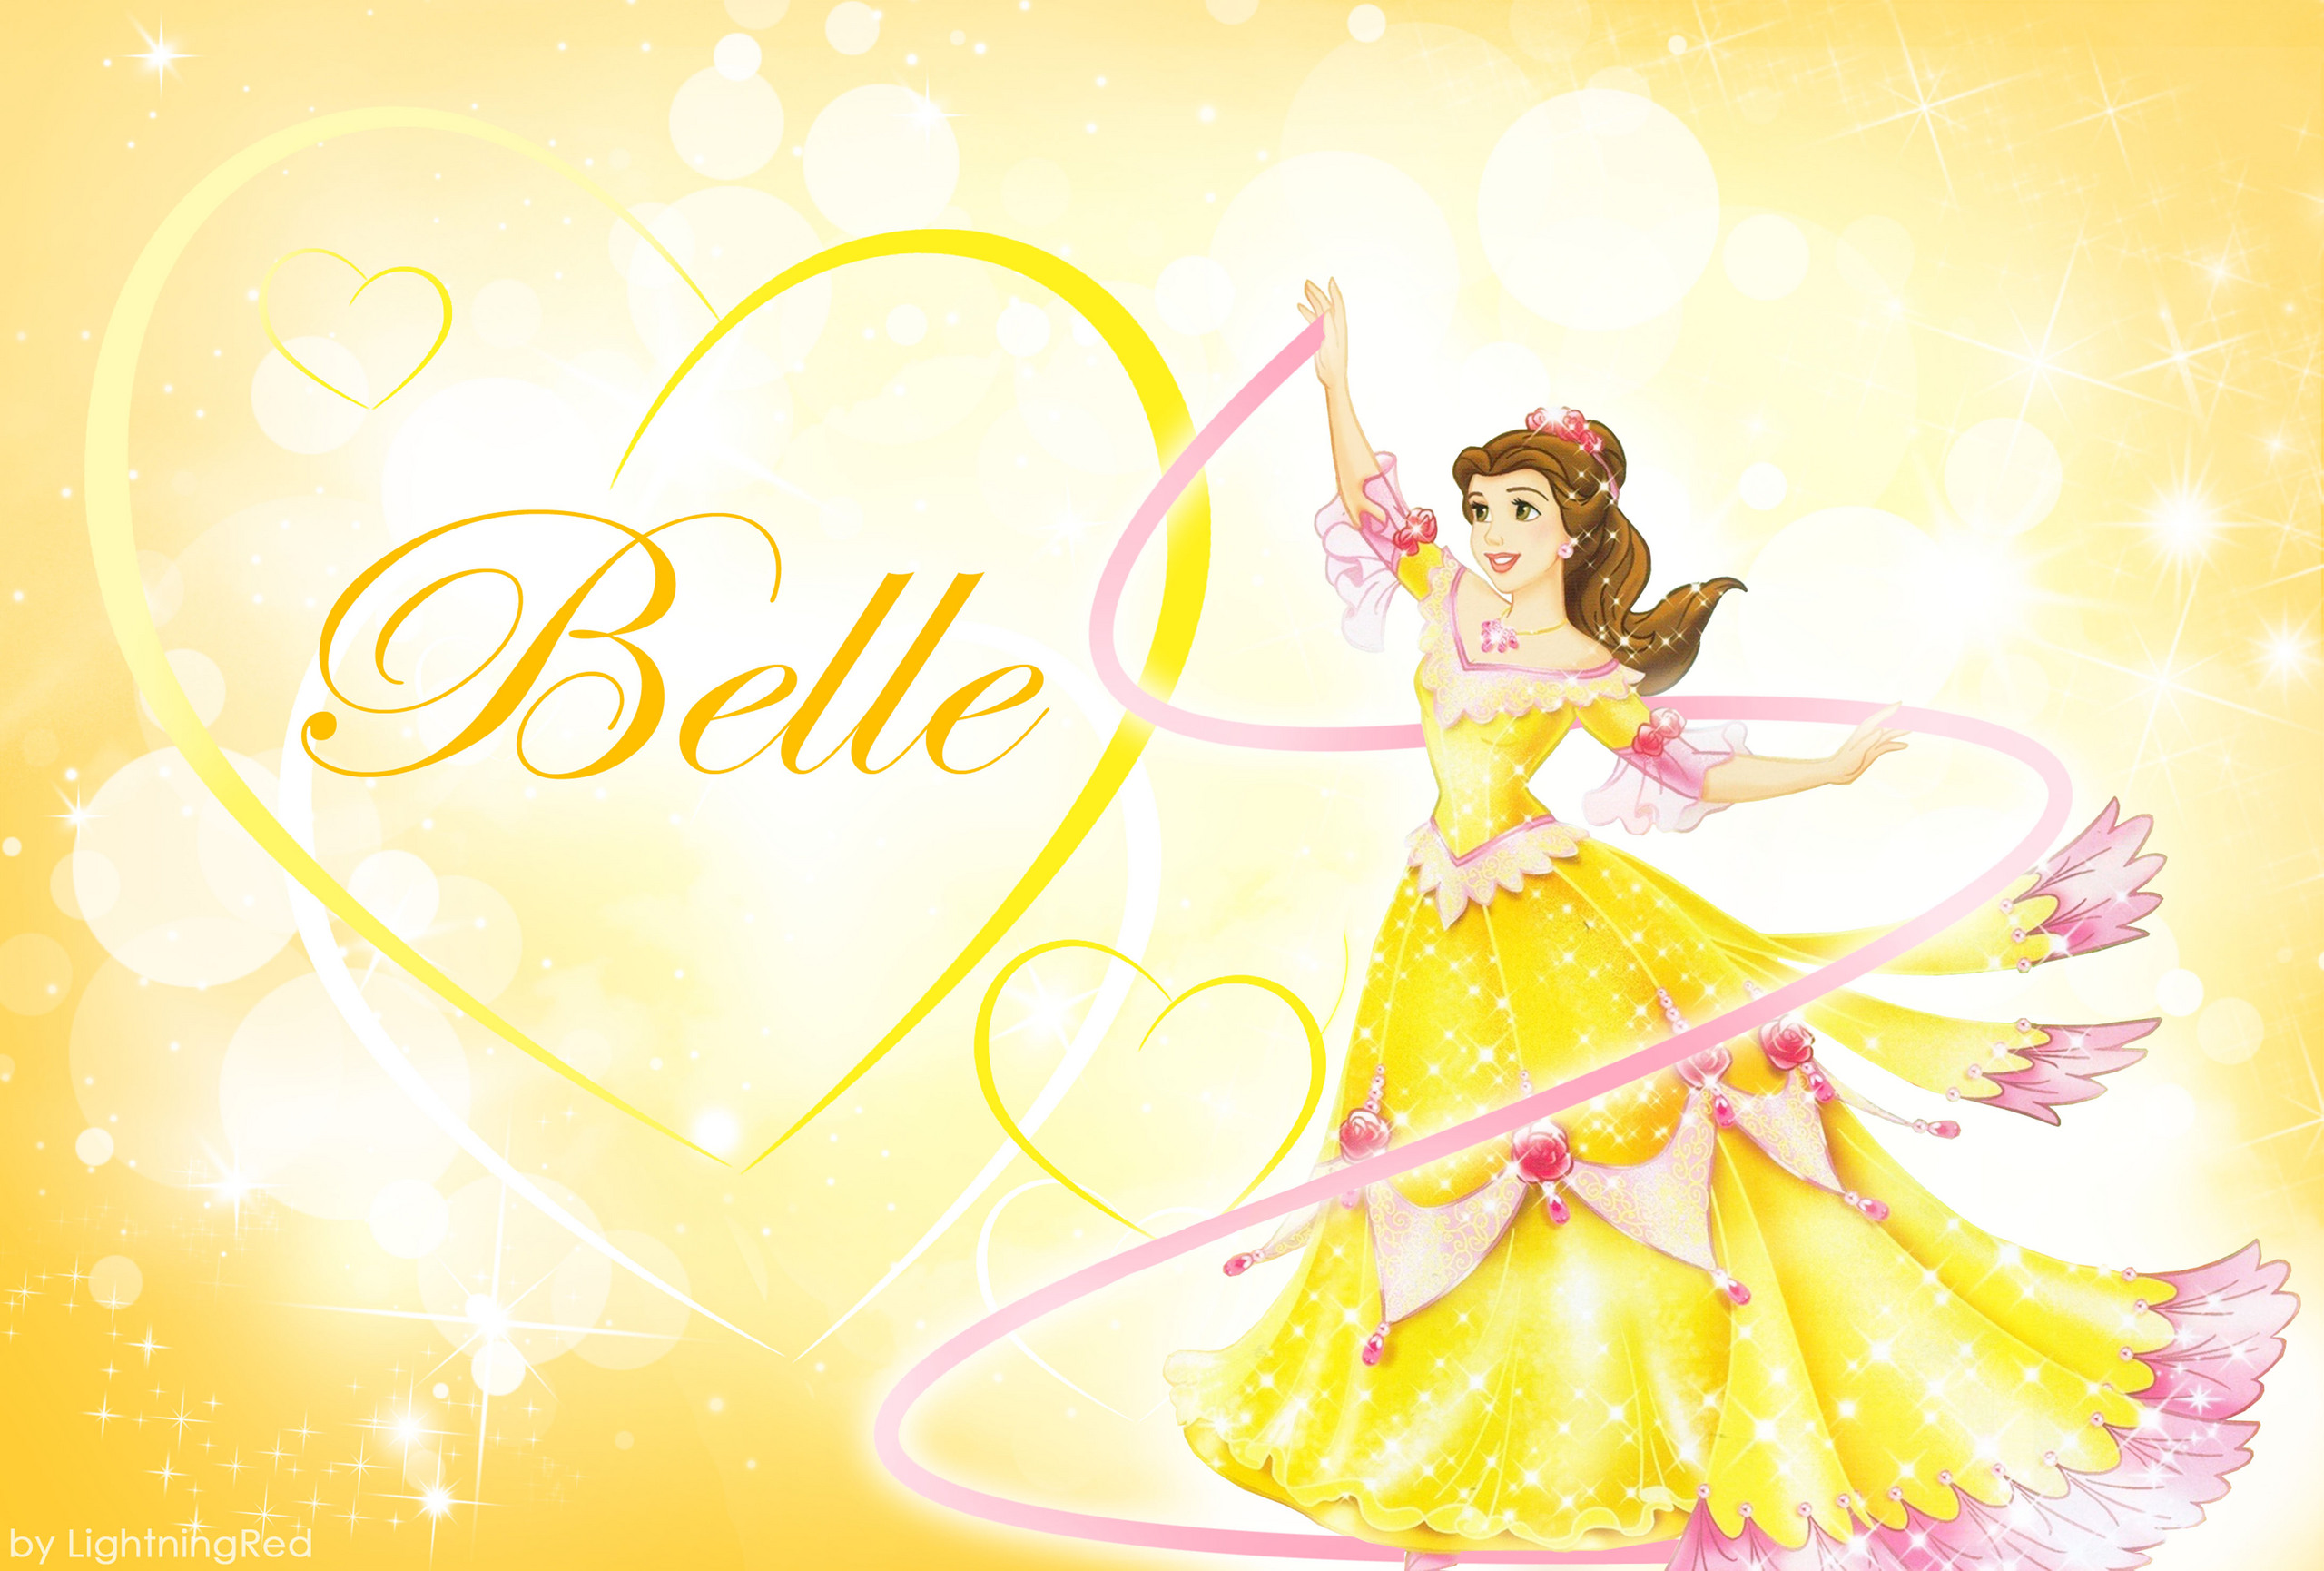 Disney belle frame clipart vector Disney belle frame clipart - ClipartFest vector